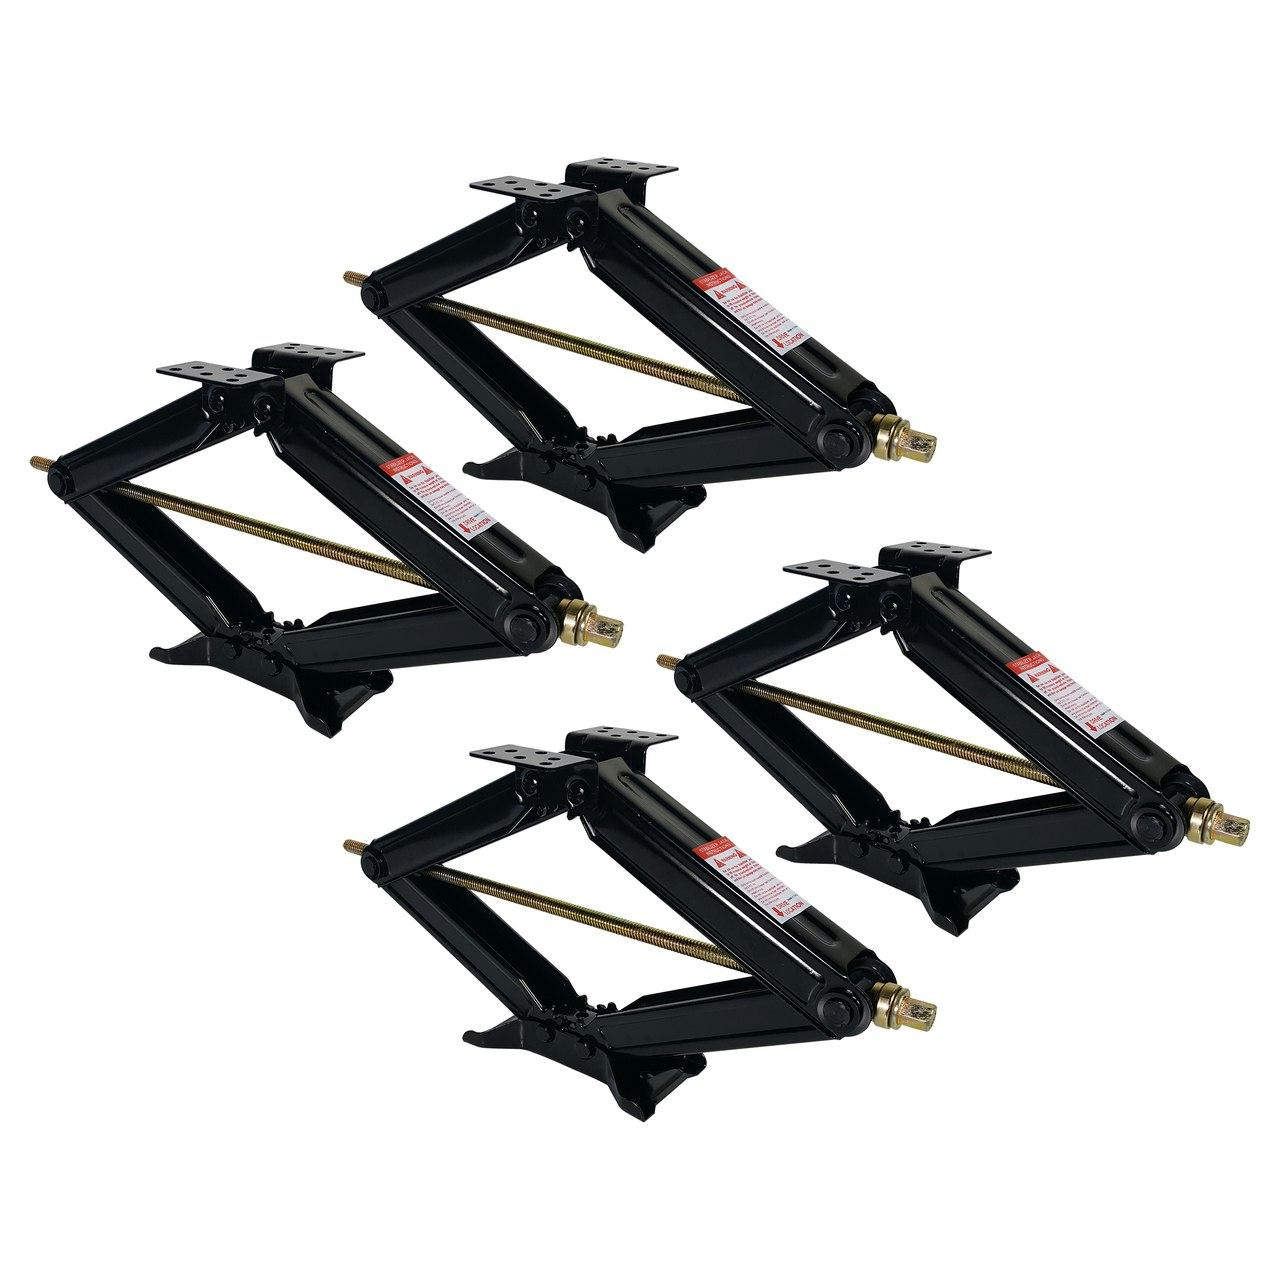 "RV Stabilizing and Leveling Scissor Jack 24"" 5000 lbs with Handle - 4 Pack"